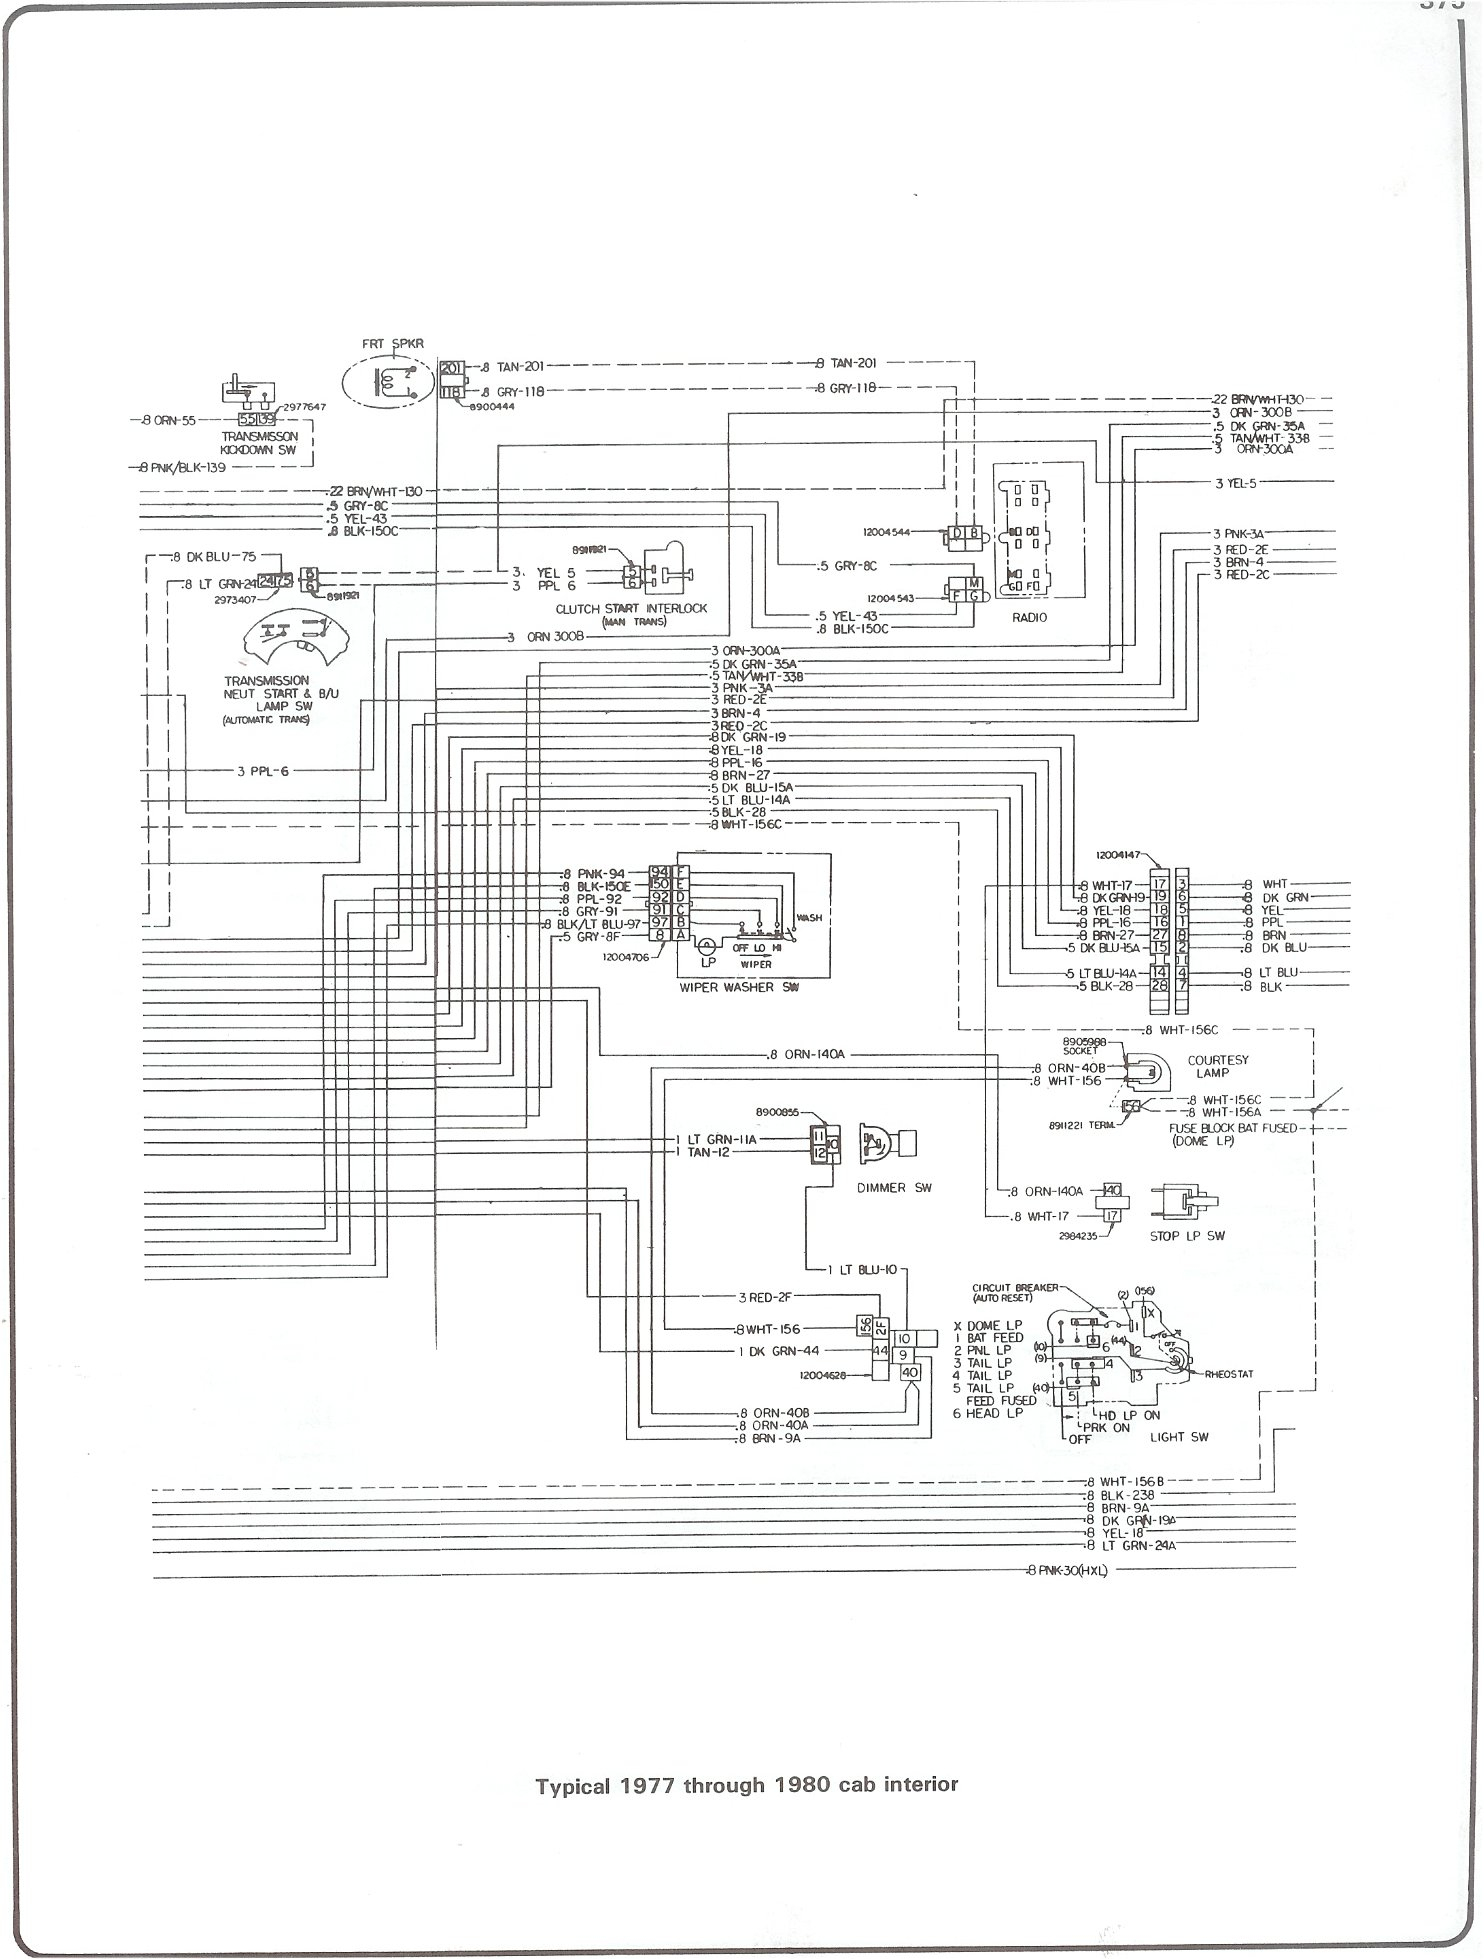 78 Chevy Truck Wiring Diagram - Wiring Diagrams Hubs - 1978 Chevy Truck Wiring Diagram